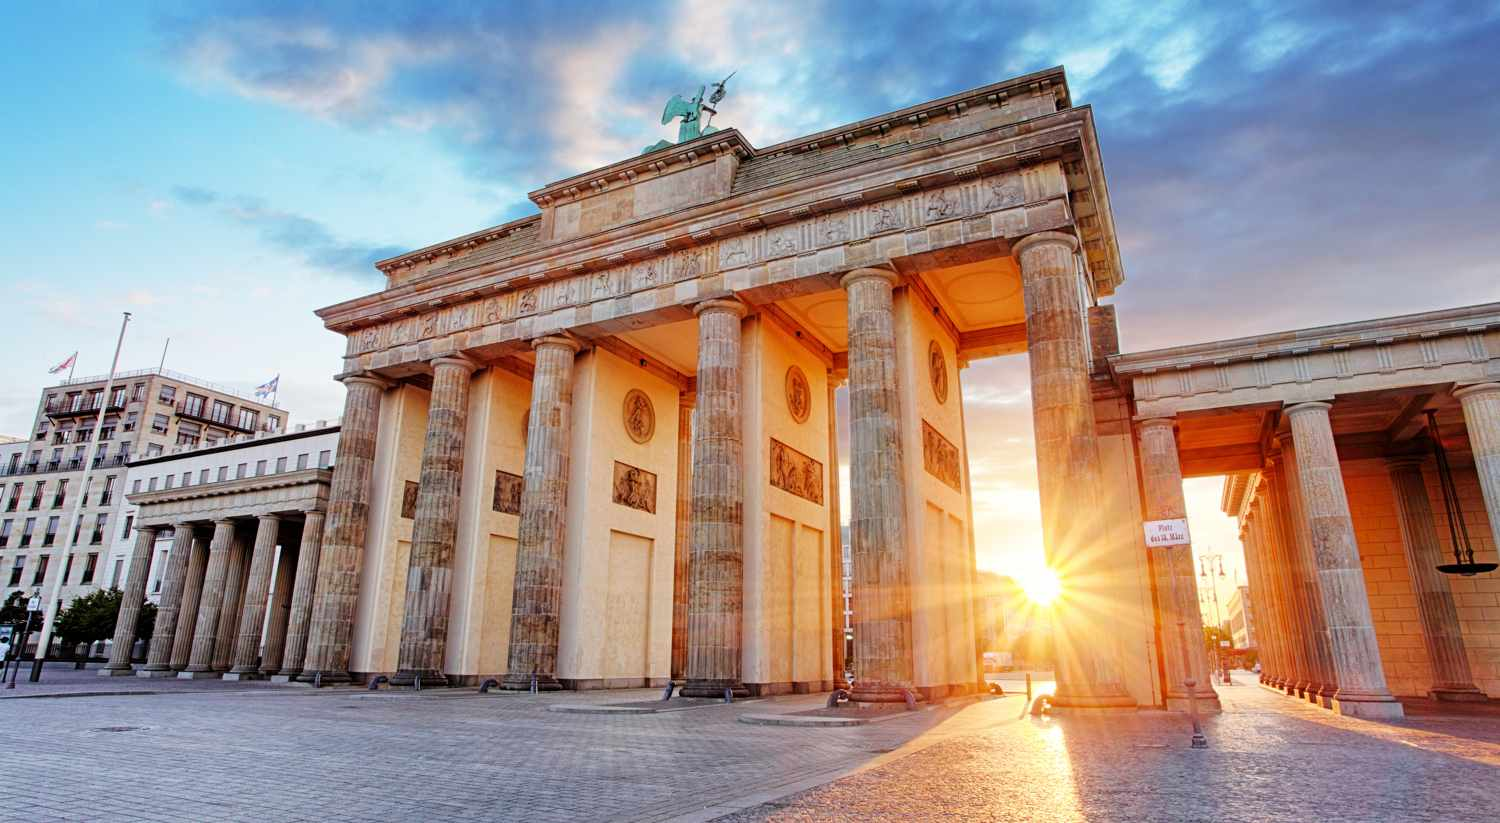 Alemania - Bradenburg Gate, Berlin, Germany